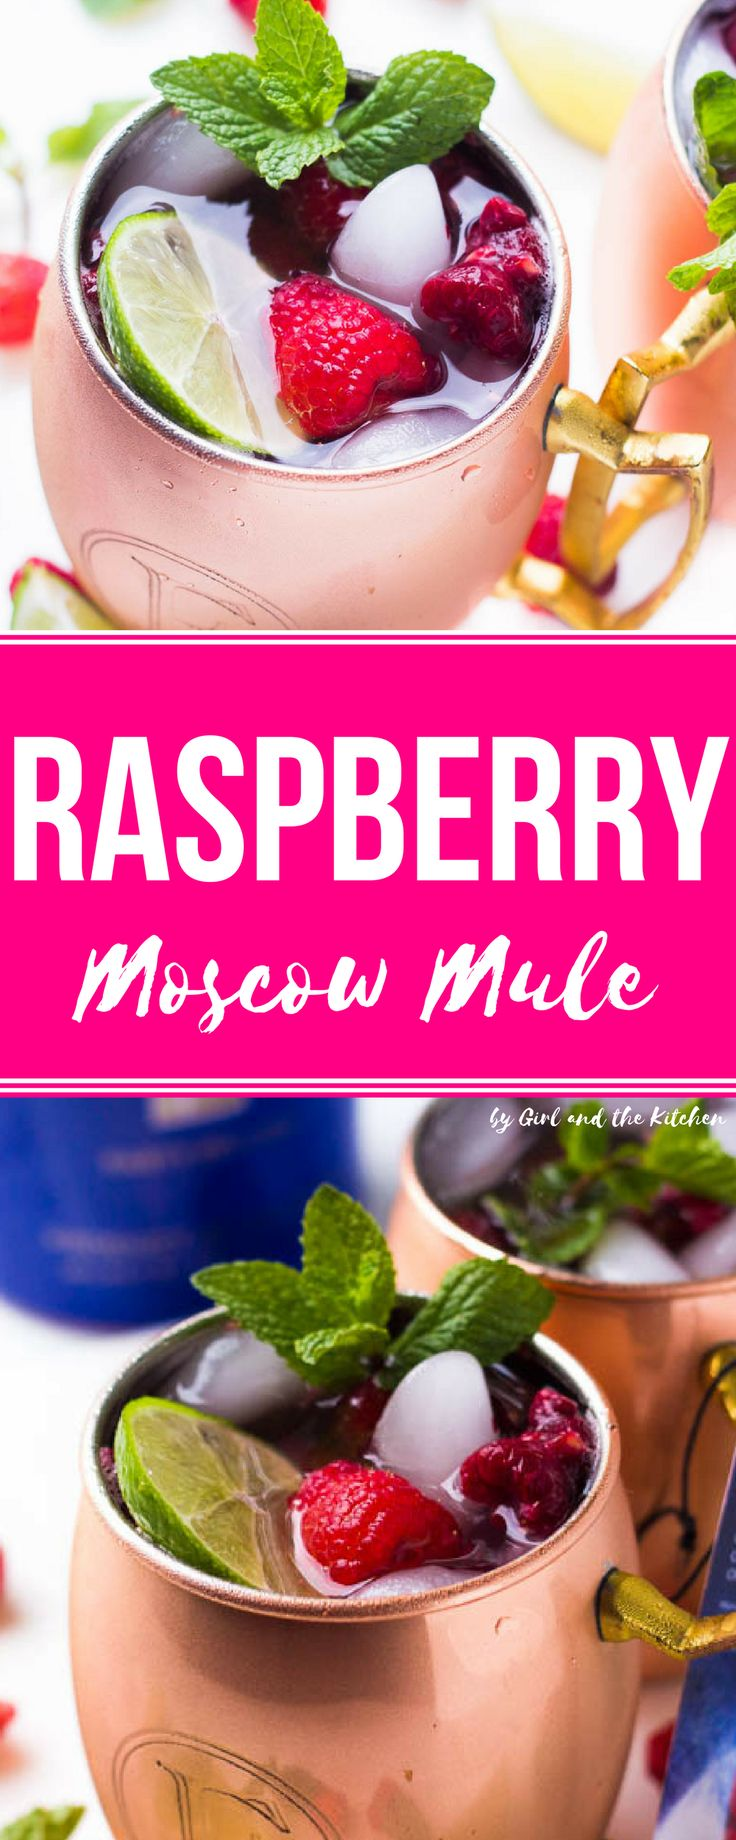 Meet a fruity and refreshing twist on the classic Moscow Mule cocktail! Full of raspberries and fresh mint